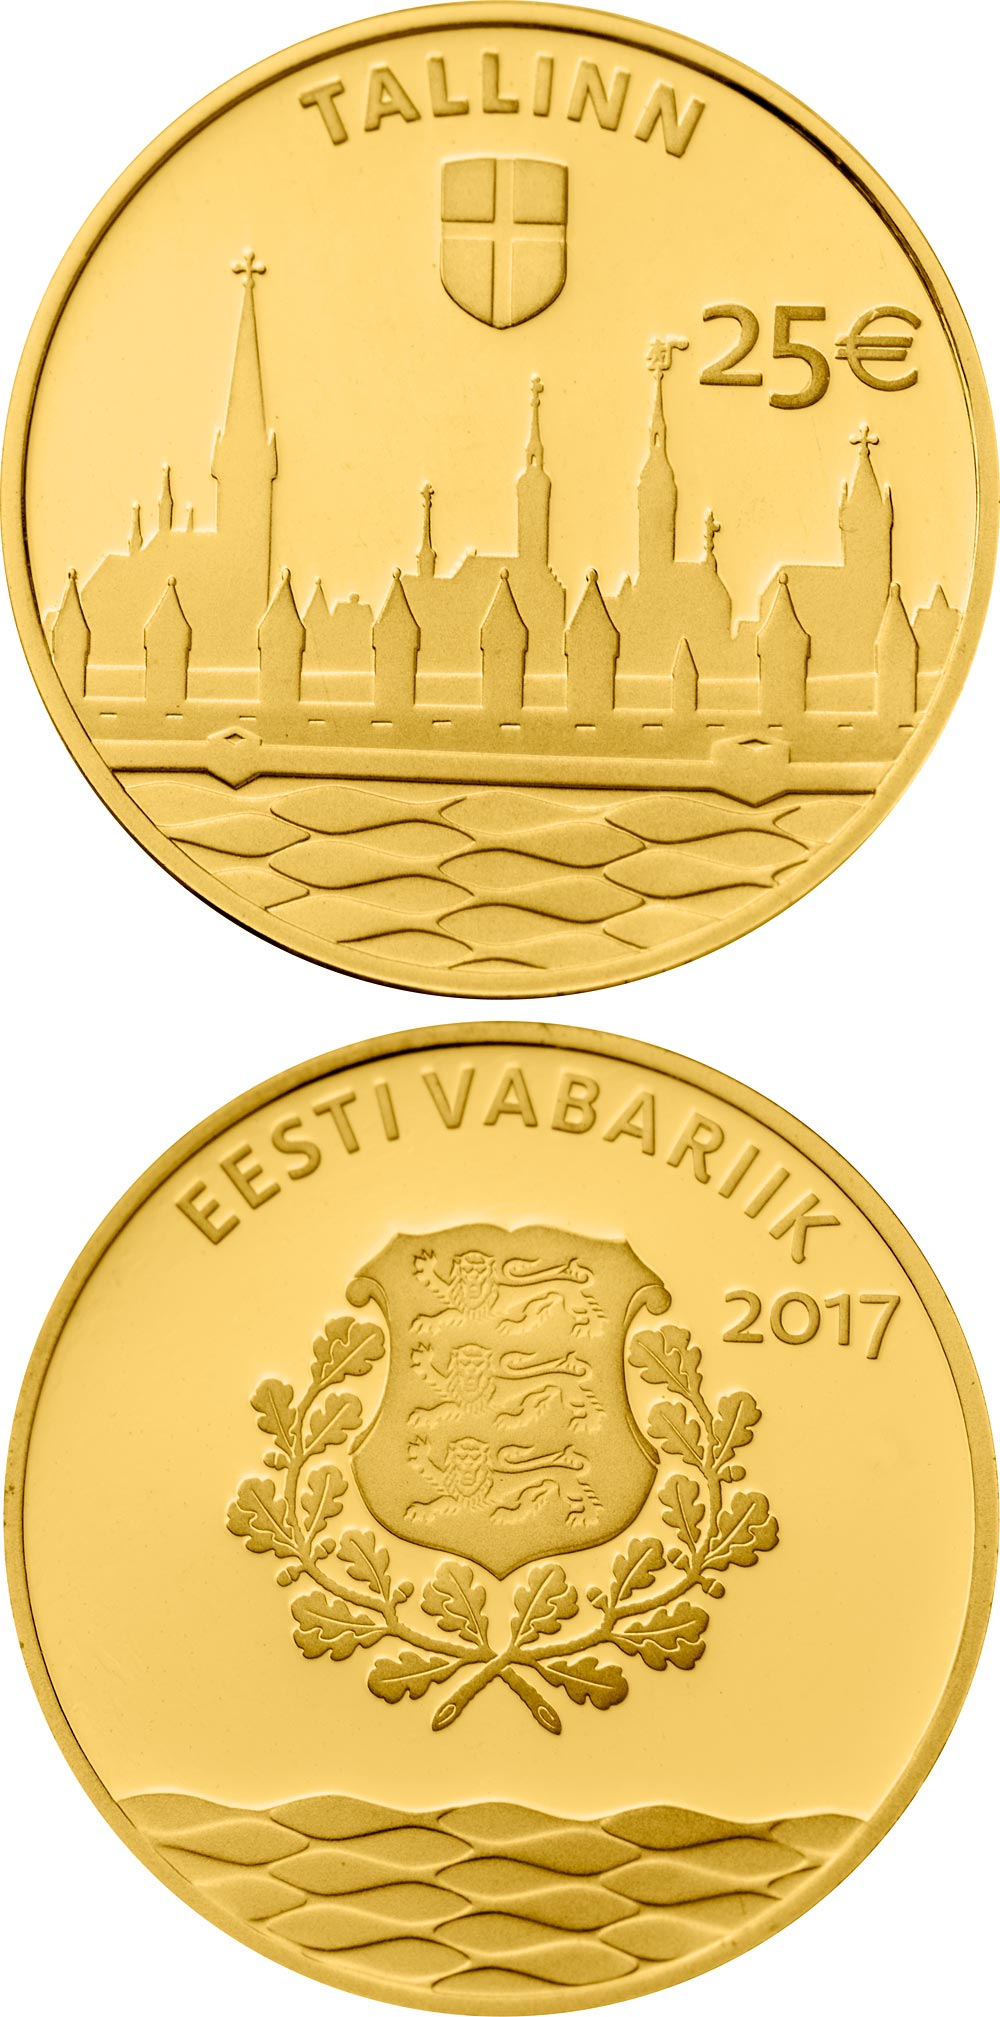 Image of 25 euro coin – Hanseatic Tallinn | Estonia 2017.  The Gold coin is of Proof quality.